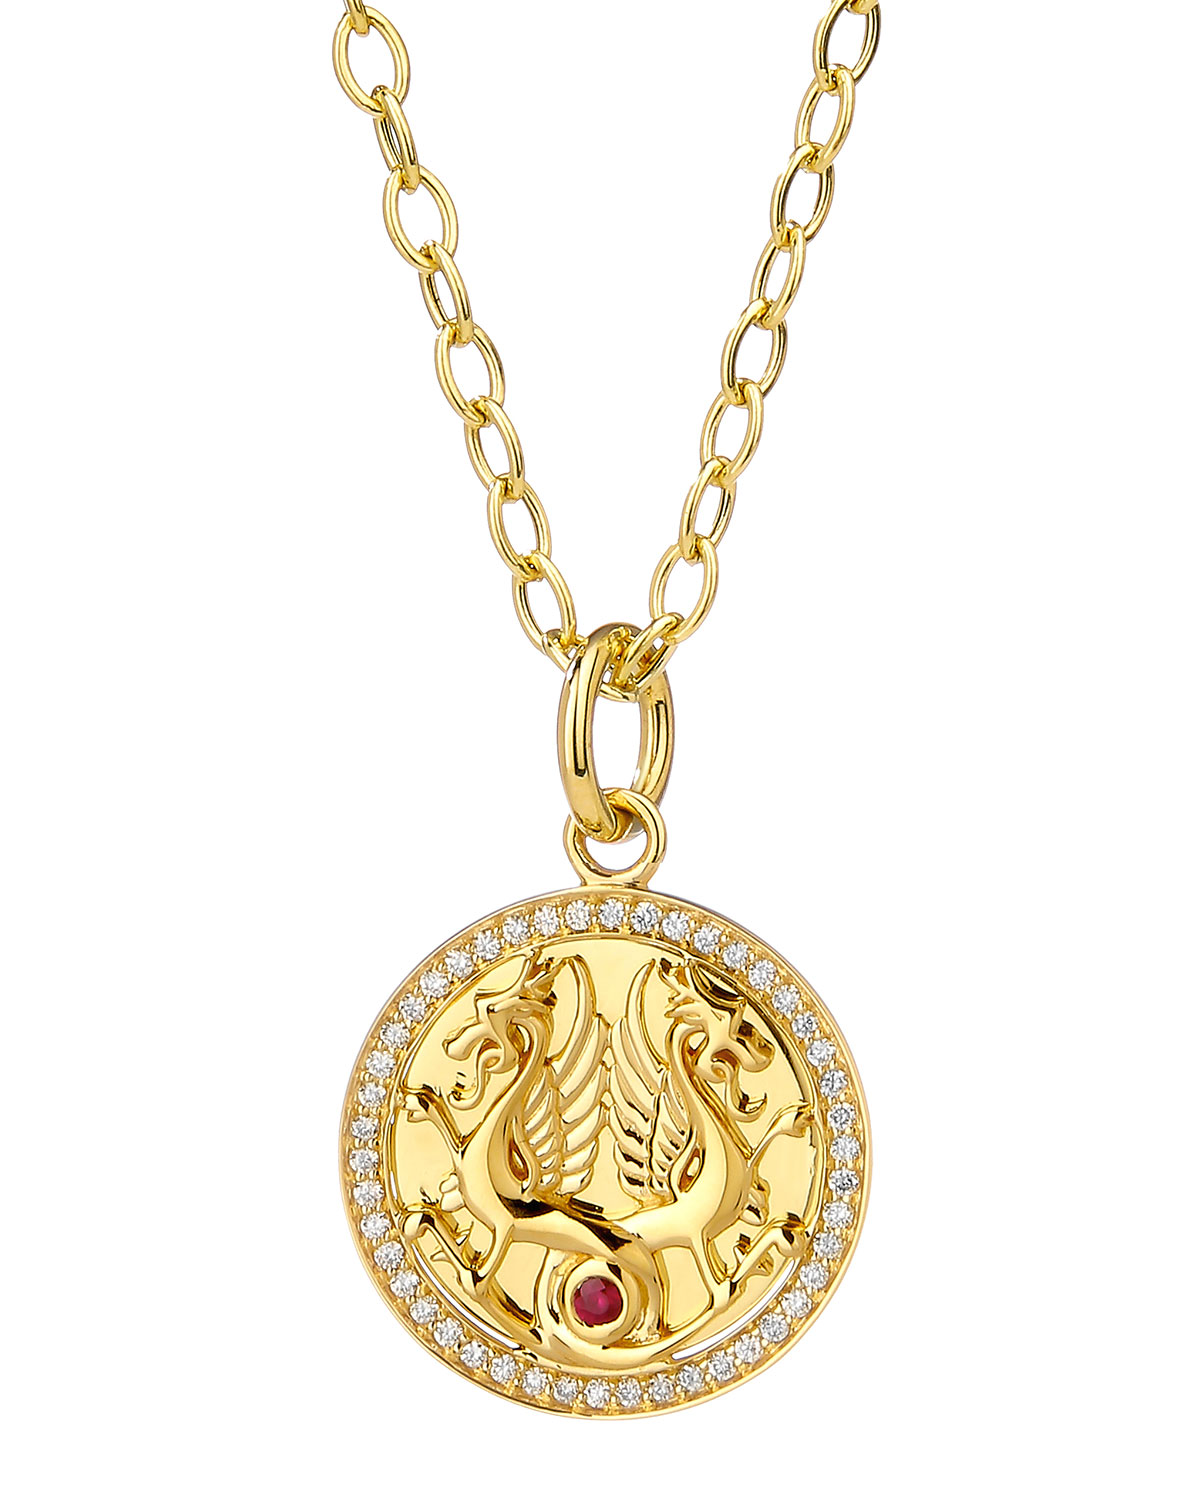 18k Yellow Gold Dragon Pendant Necklace